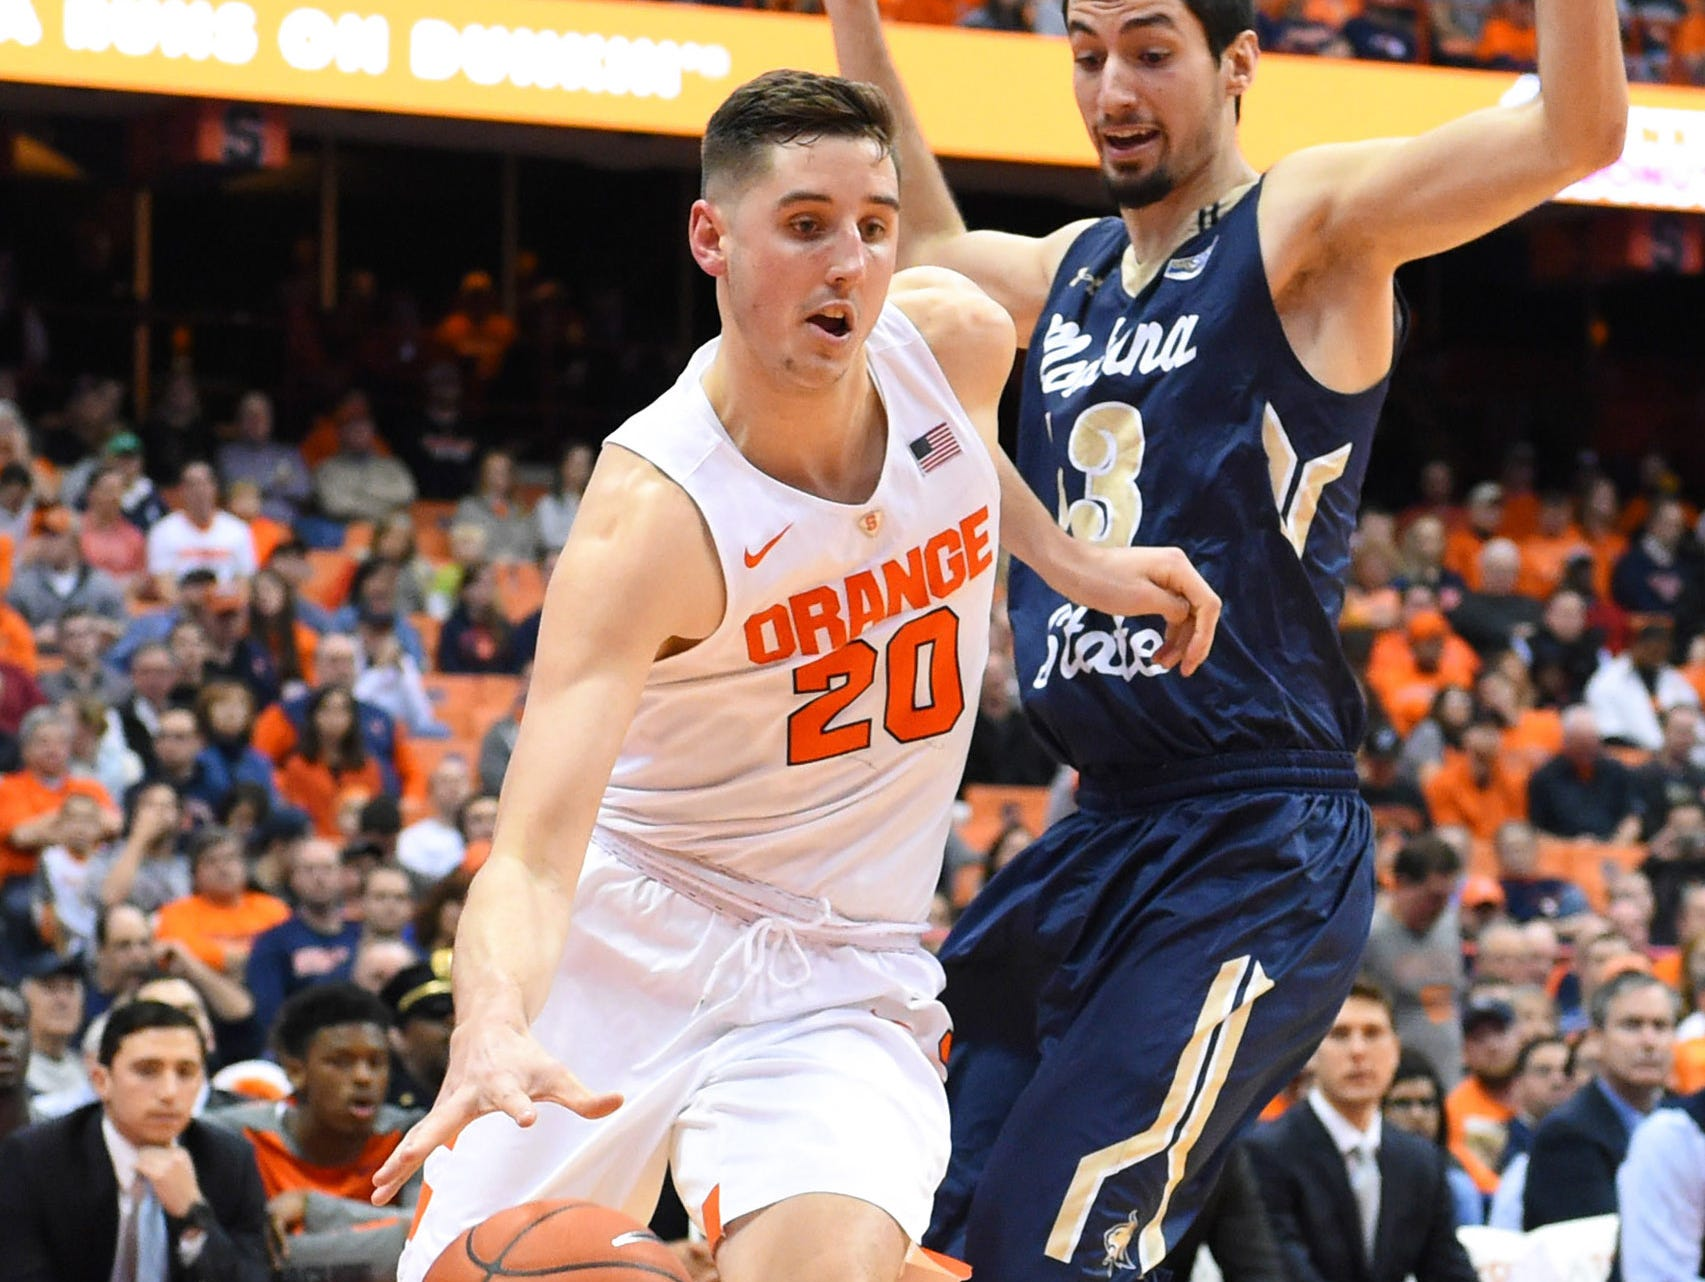 Syracuse's Tyler Lydon drives to the basket in a Dec. 22, 2015 game against Montana State in Syracuse.